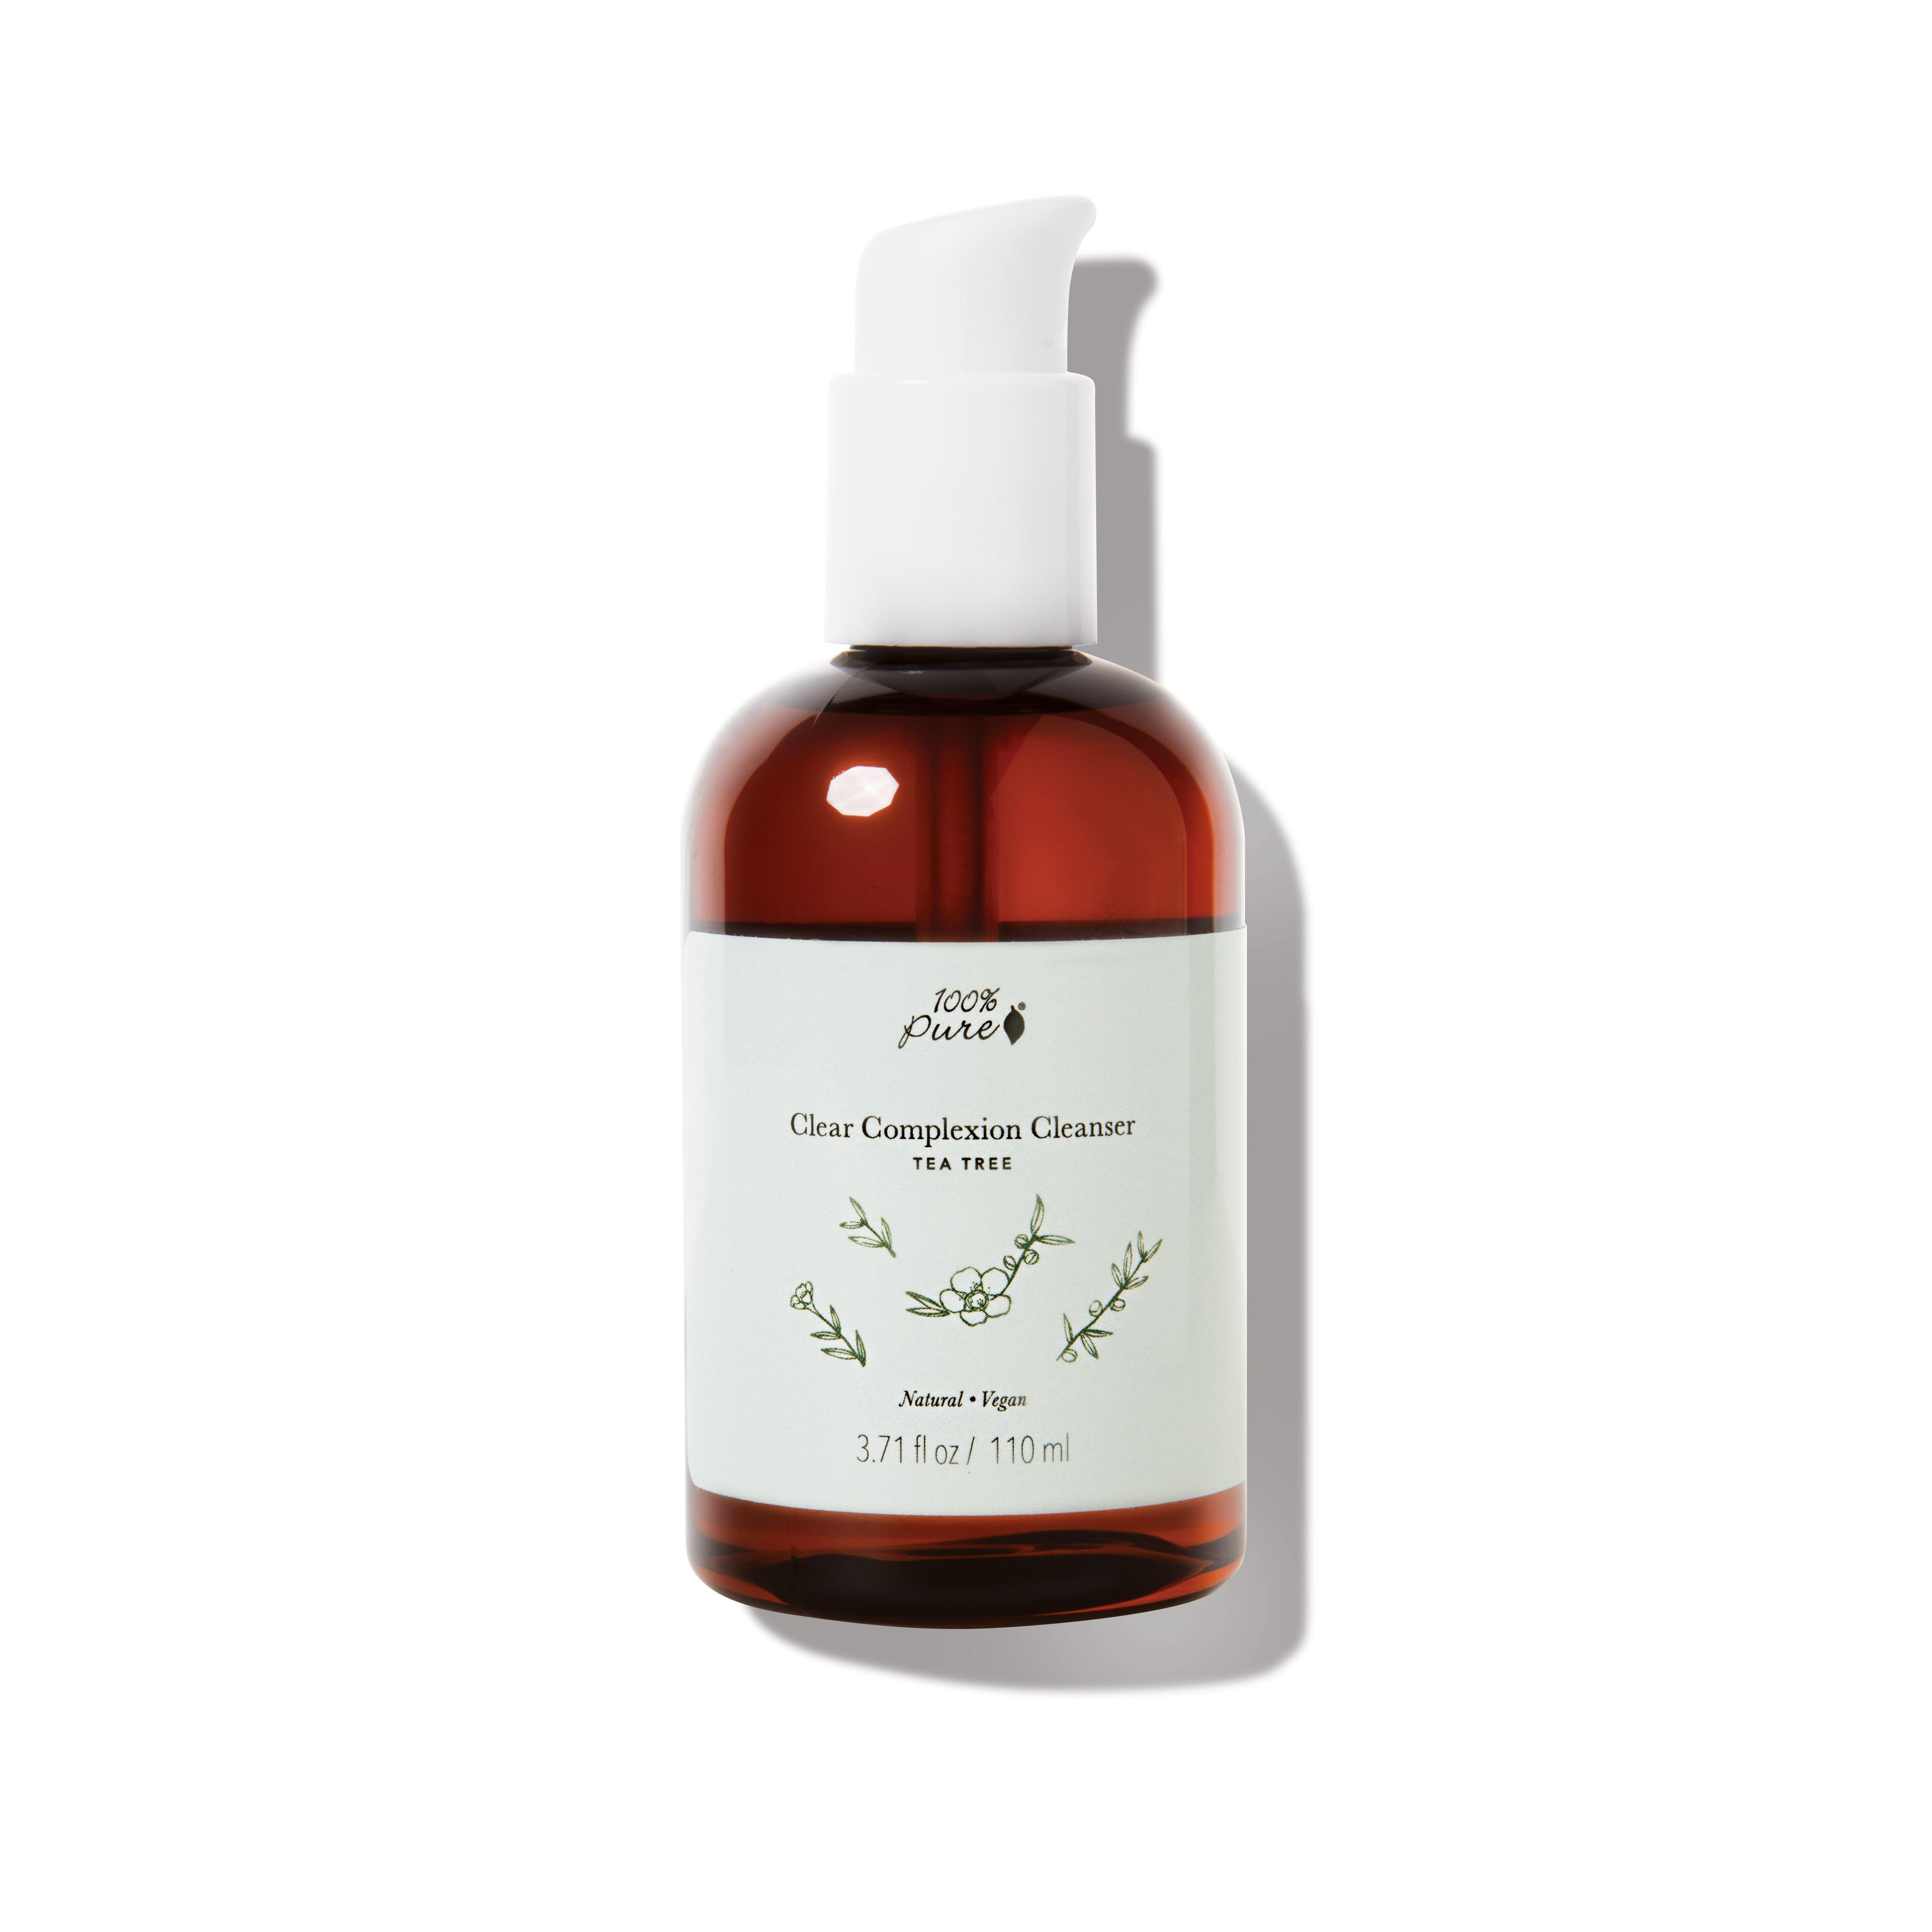 Product Grid - Tea Tree Clear Complexion Cleanser